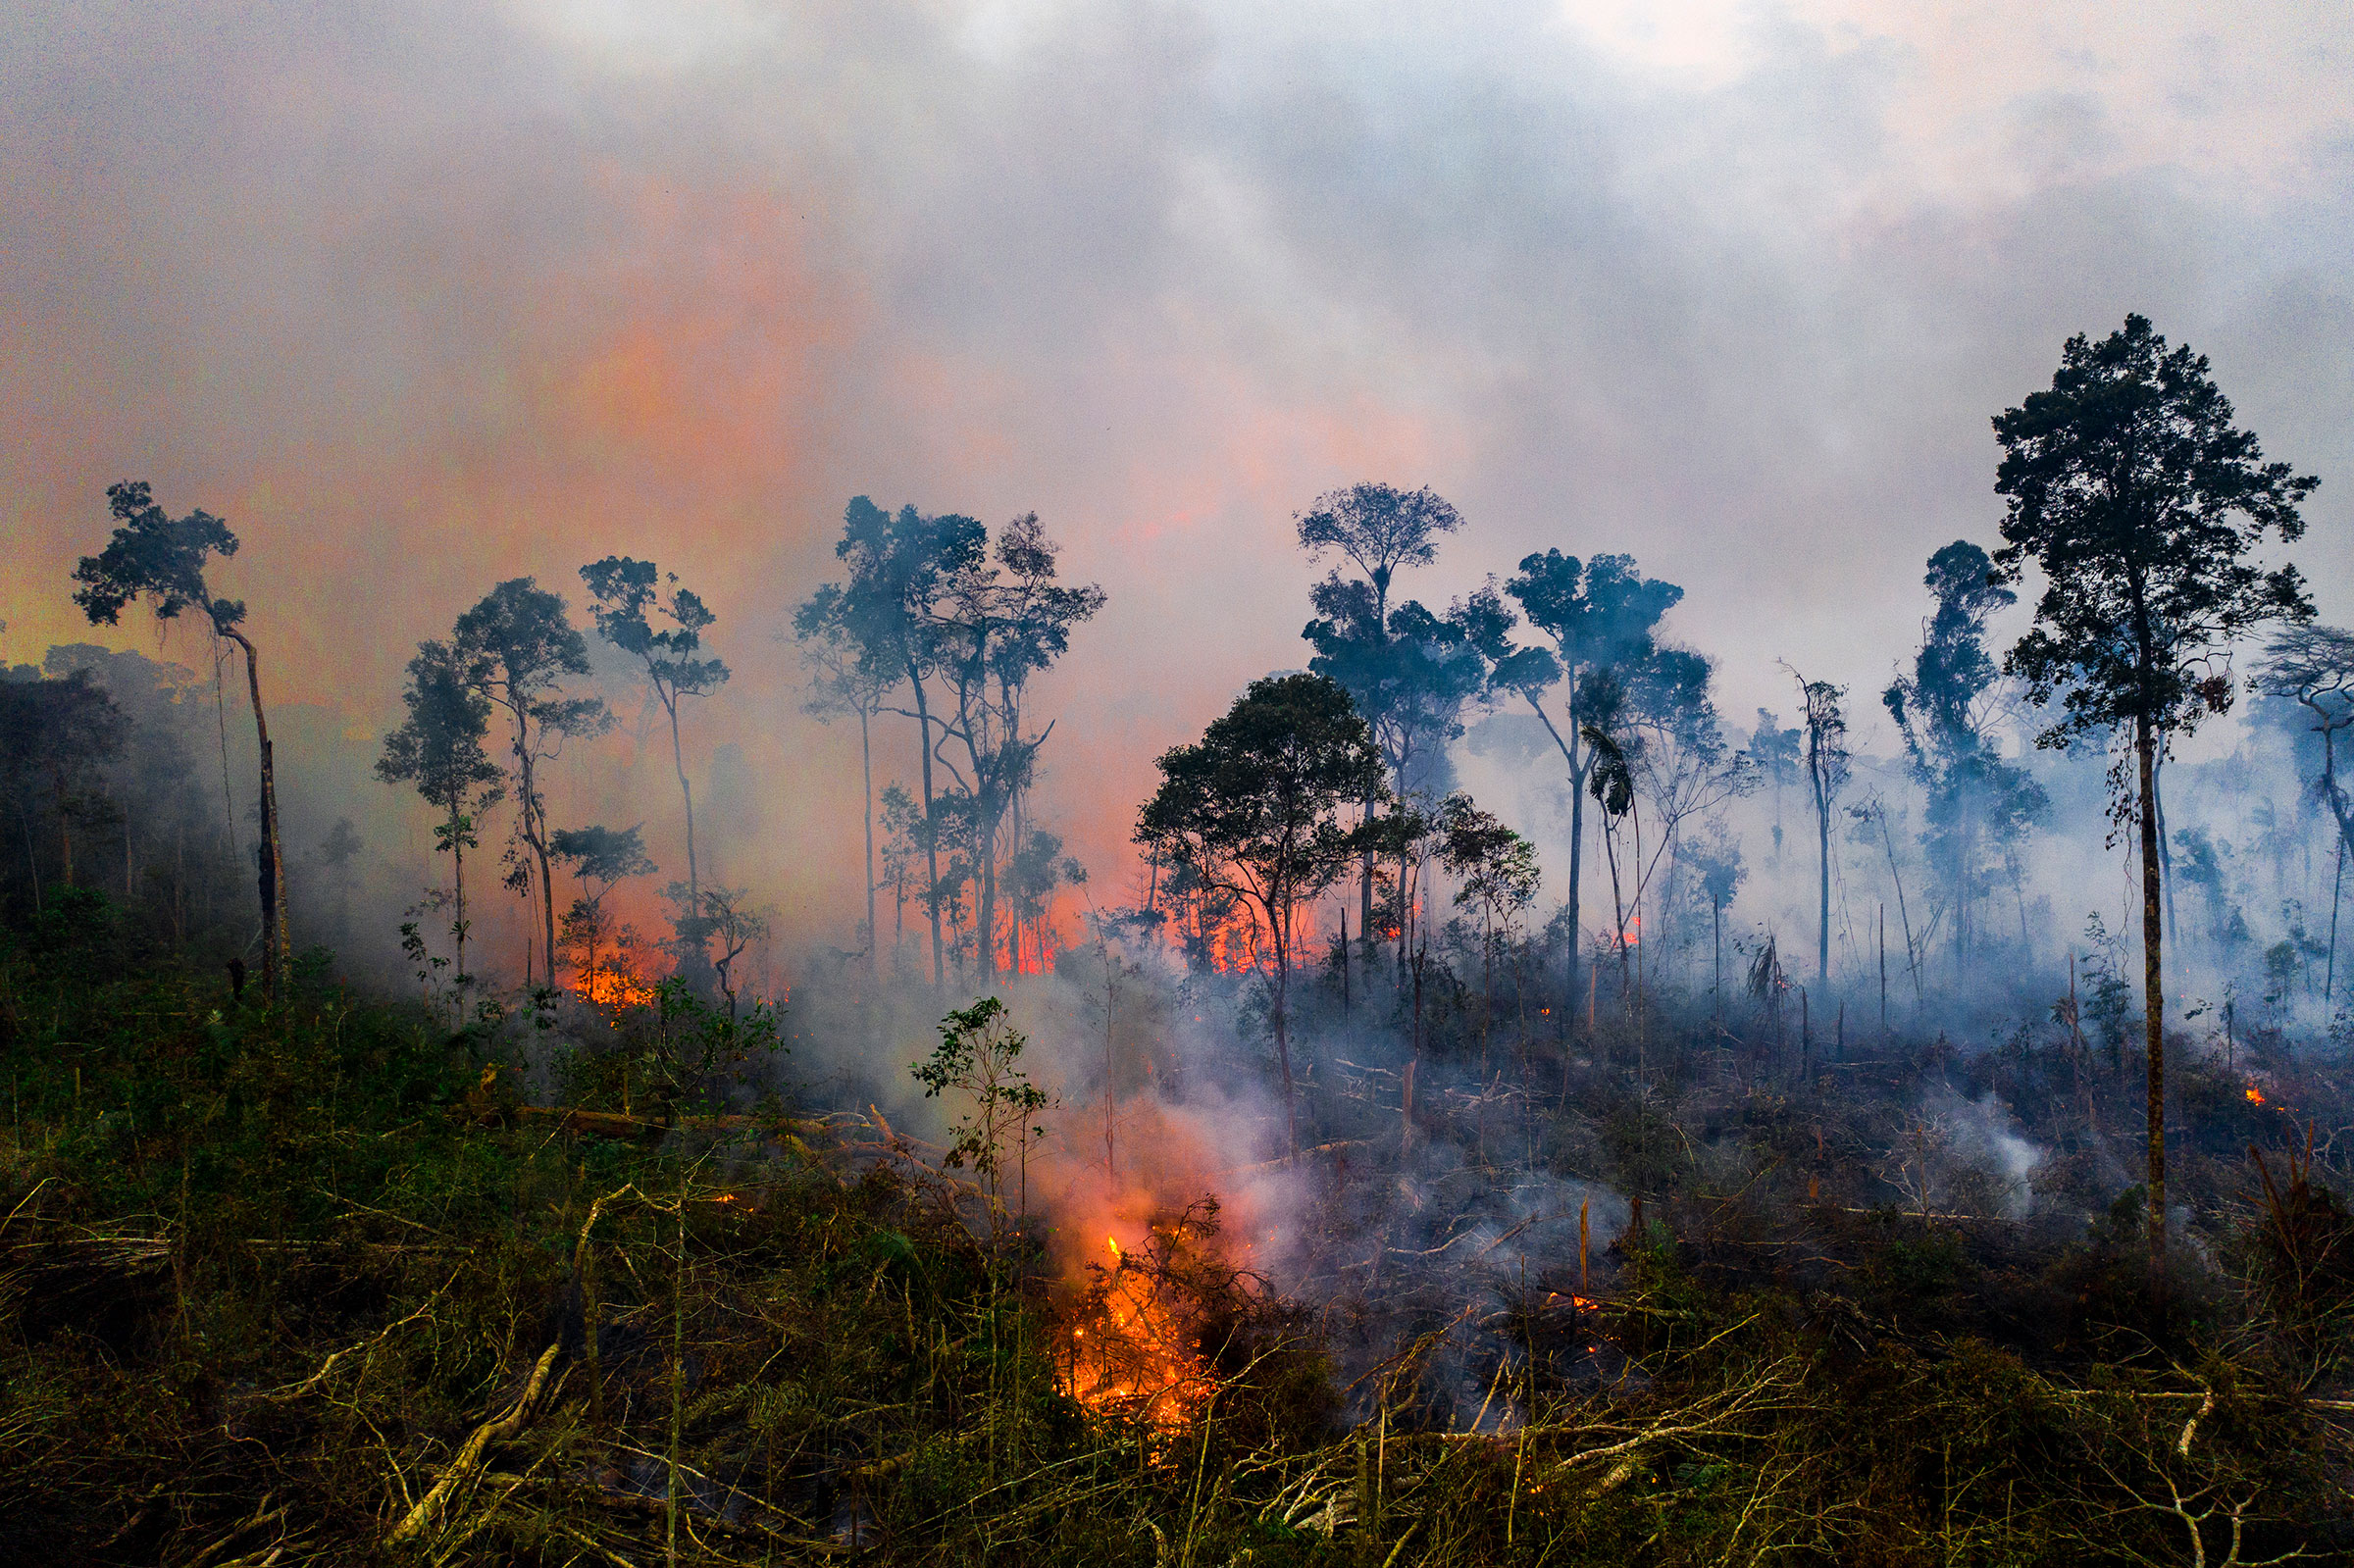 A fire near the Jacundá National Forest in Brazil's Amazon in August